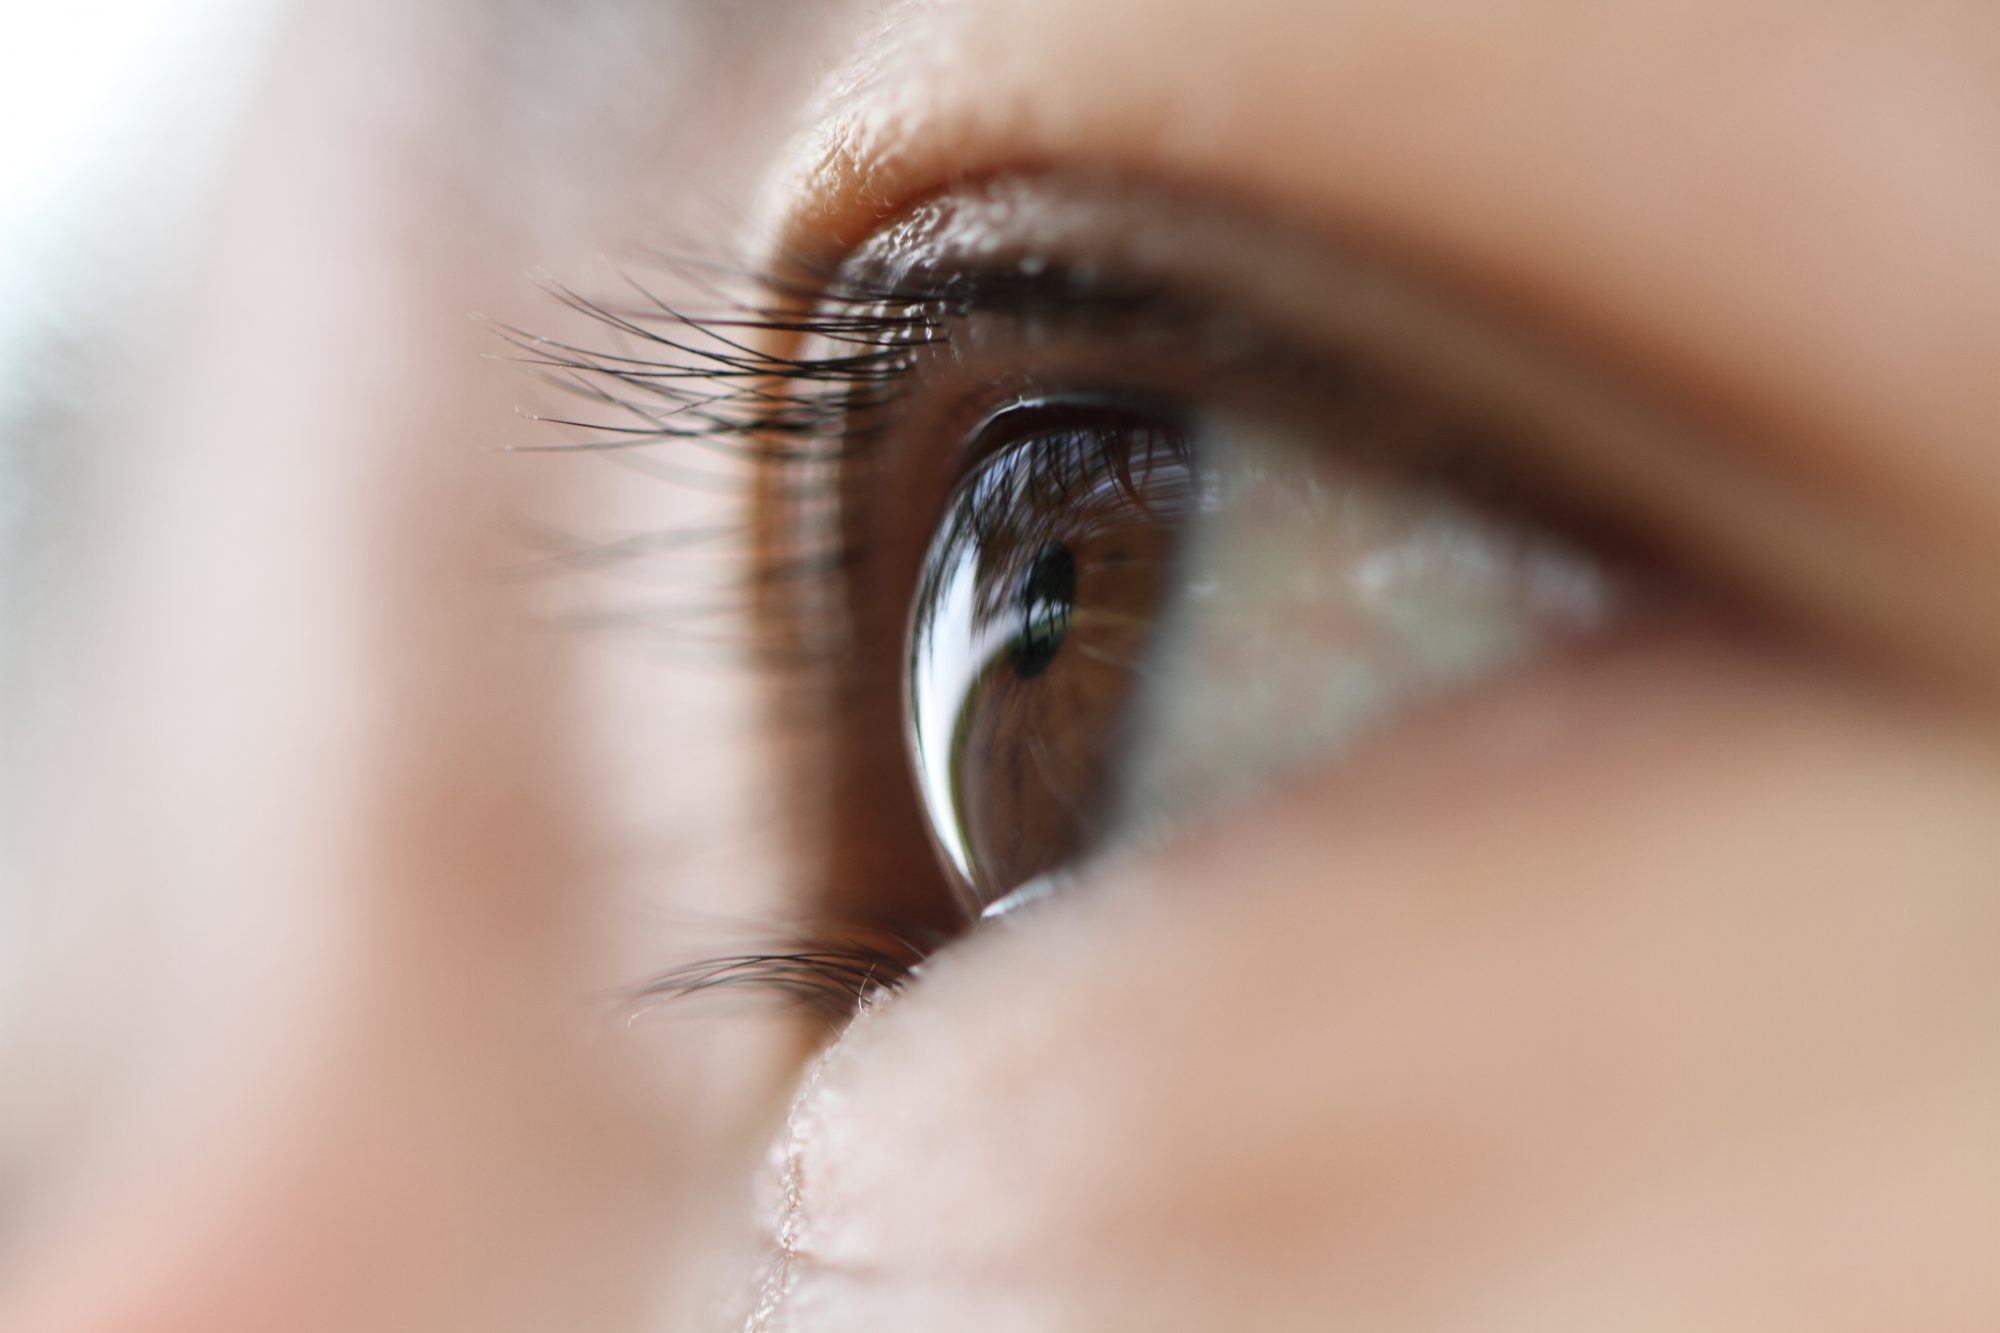 What are dry eye symptoms?